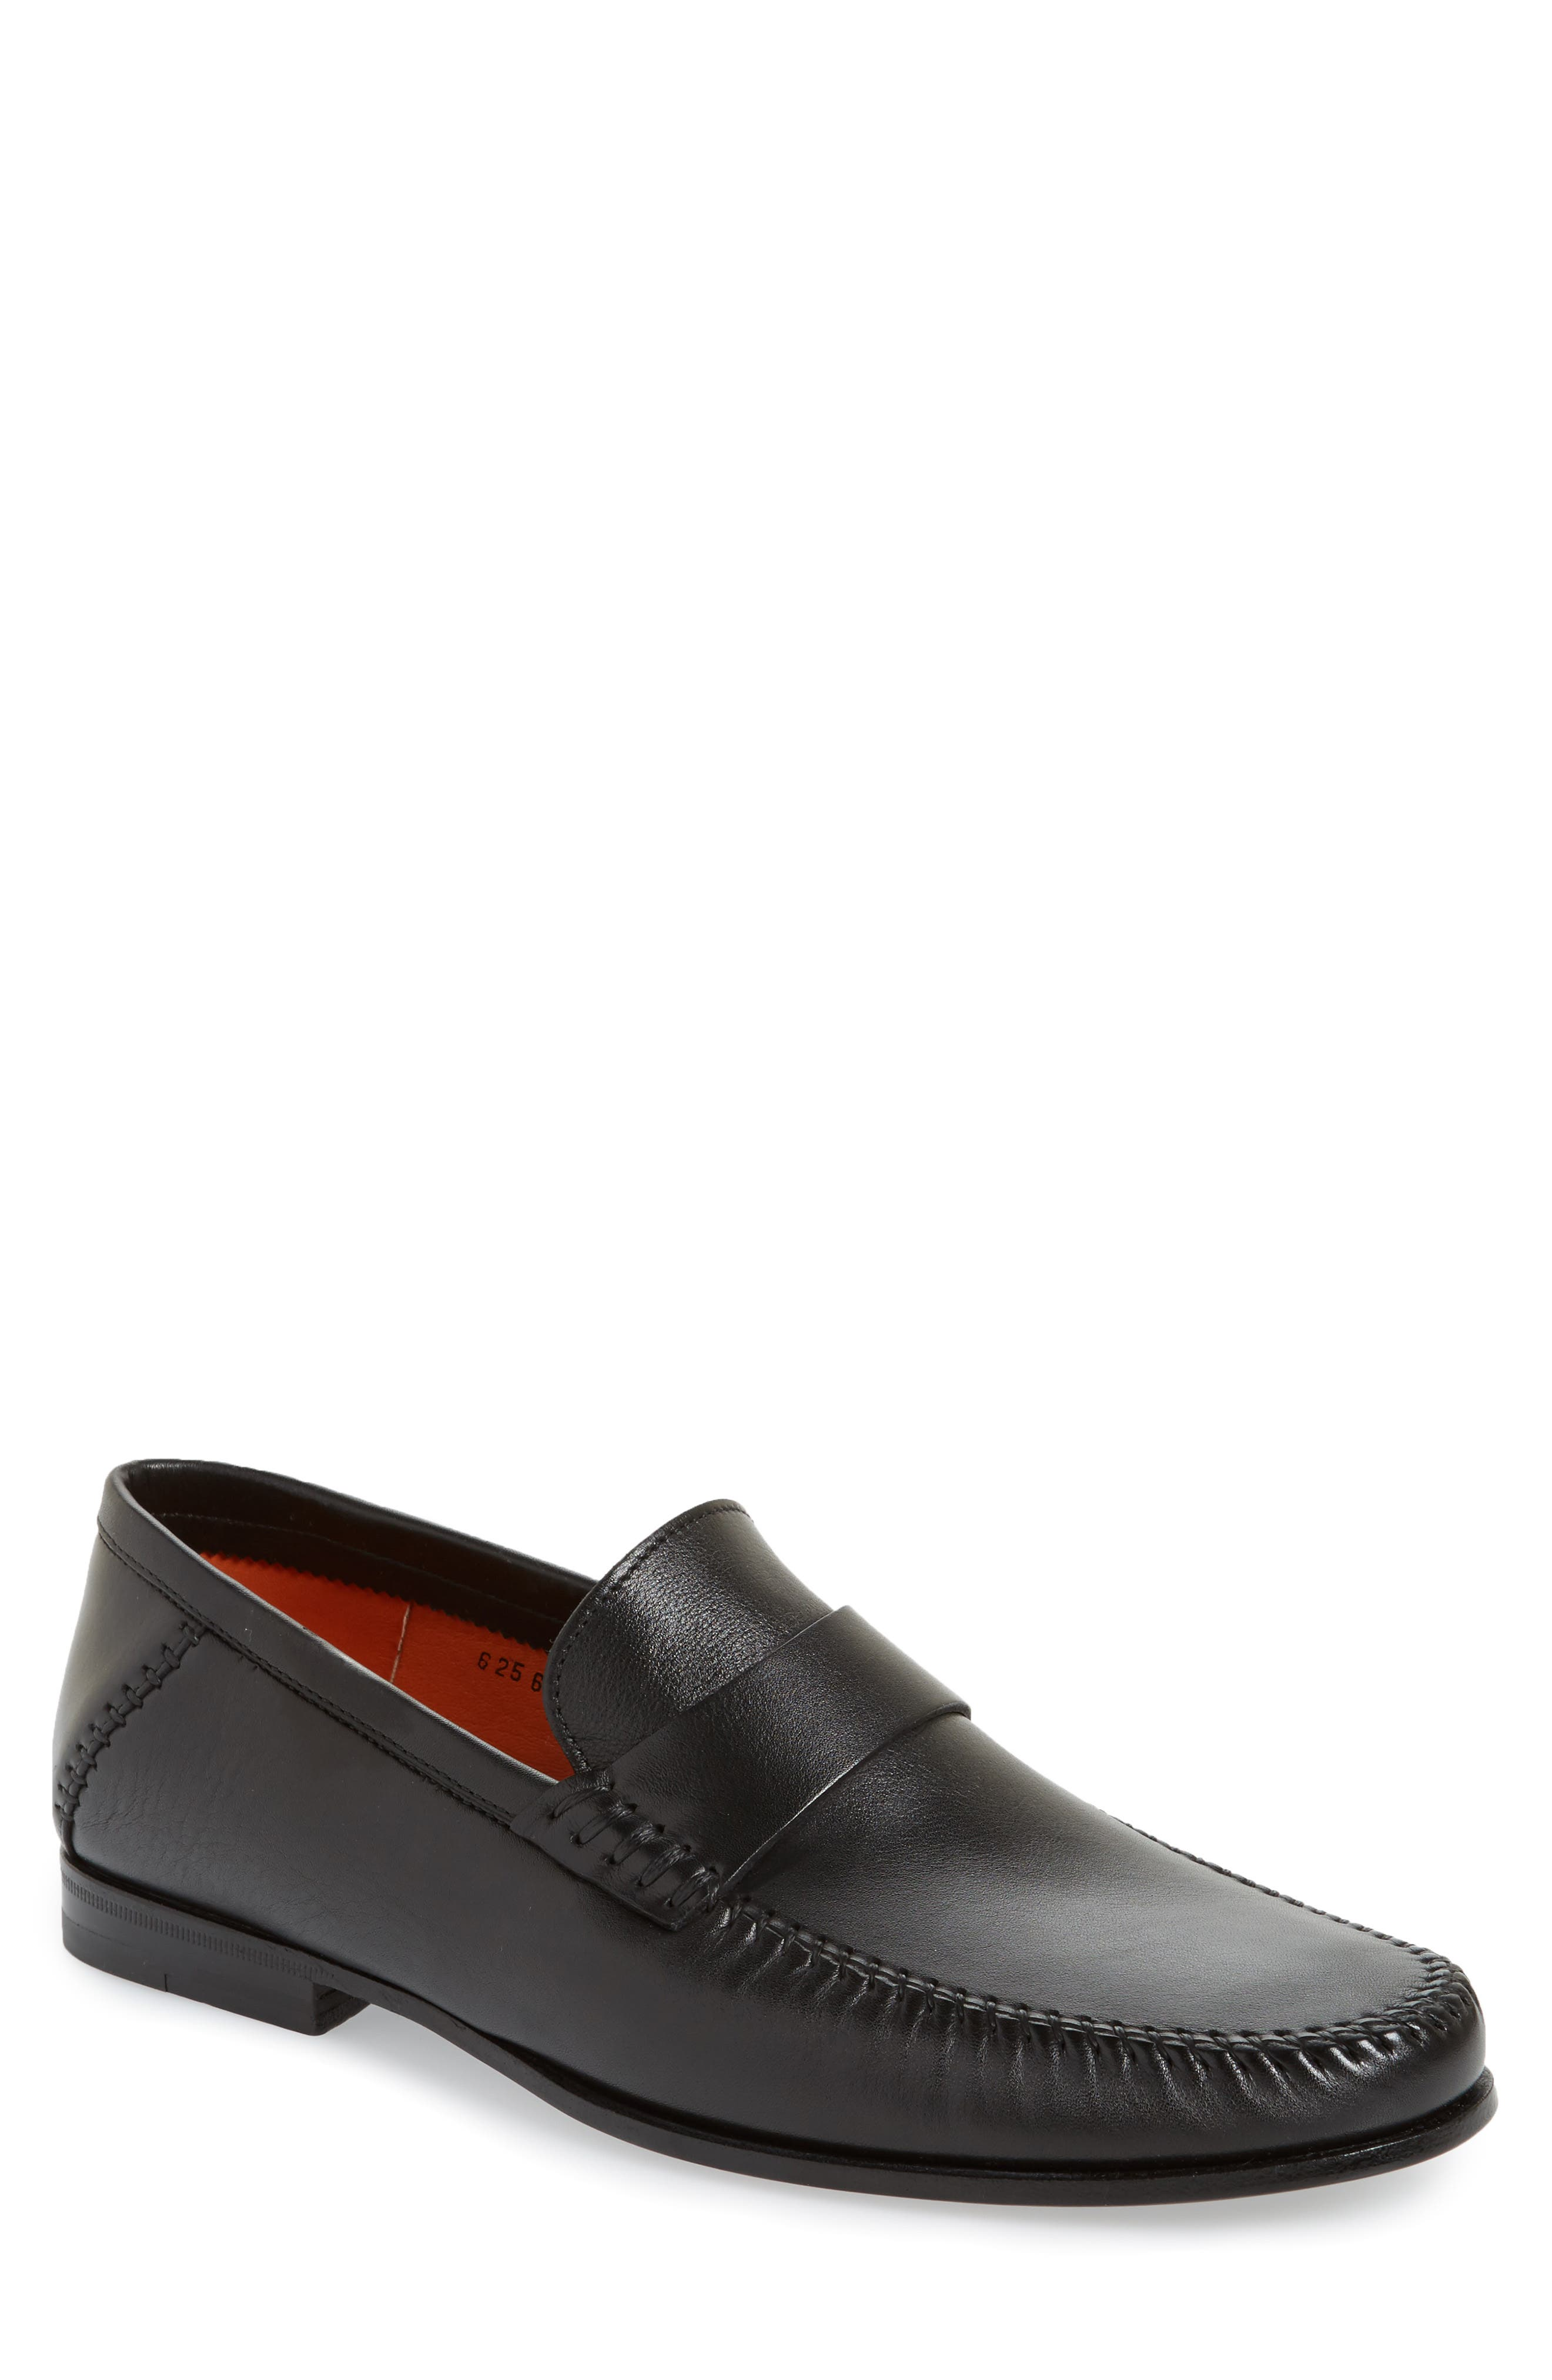 'Paine' Loafer,                             Main thumbnail 1, color,                             002